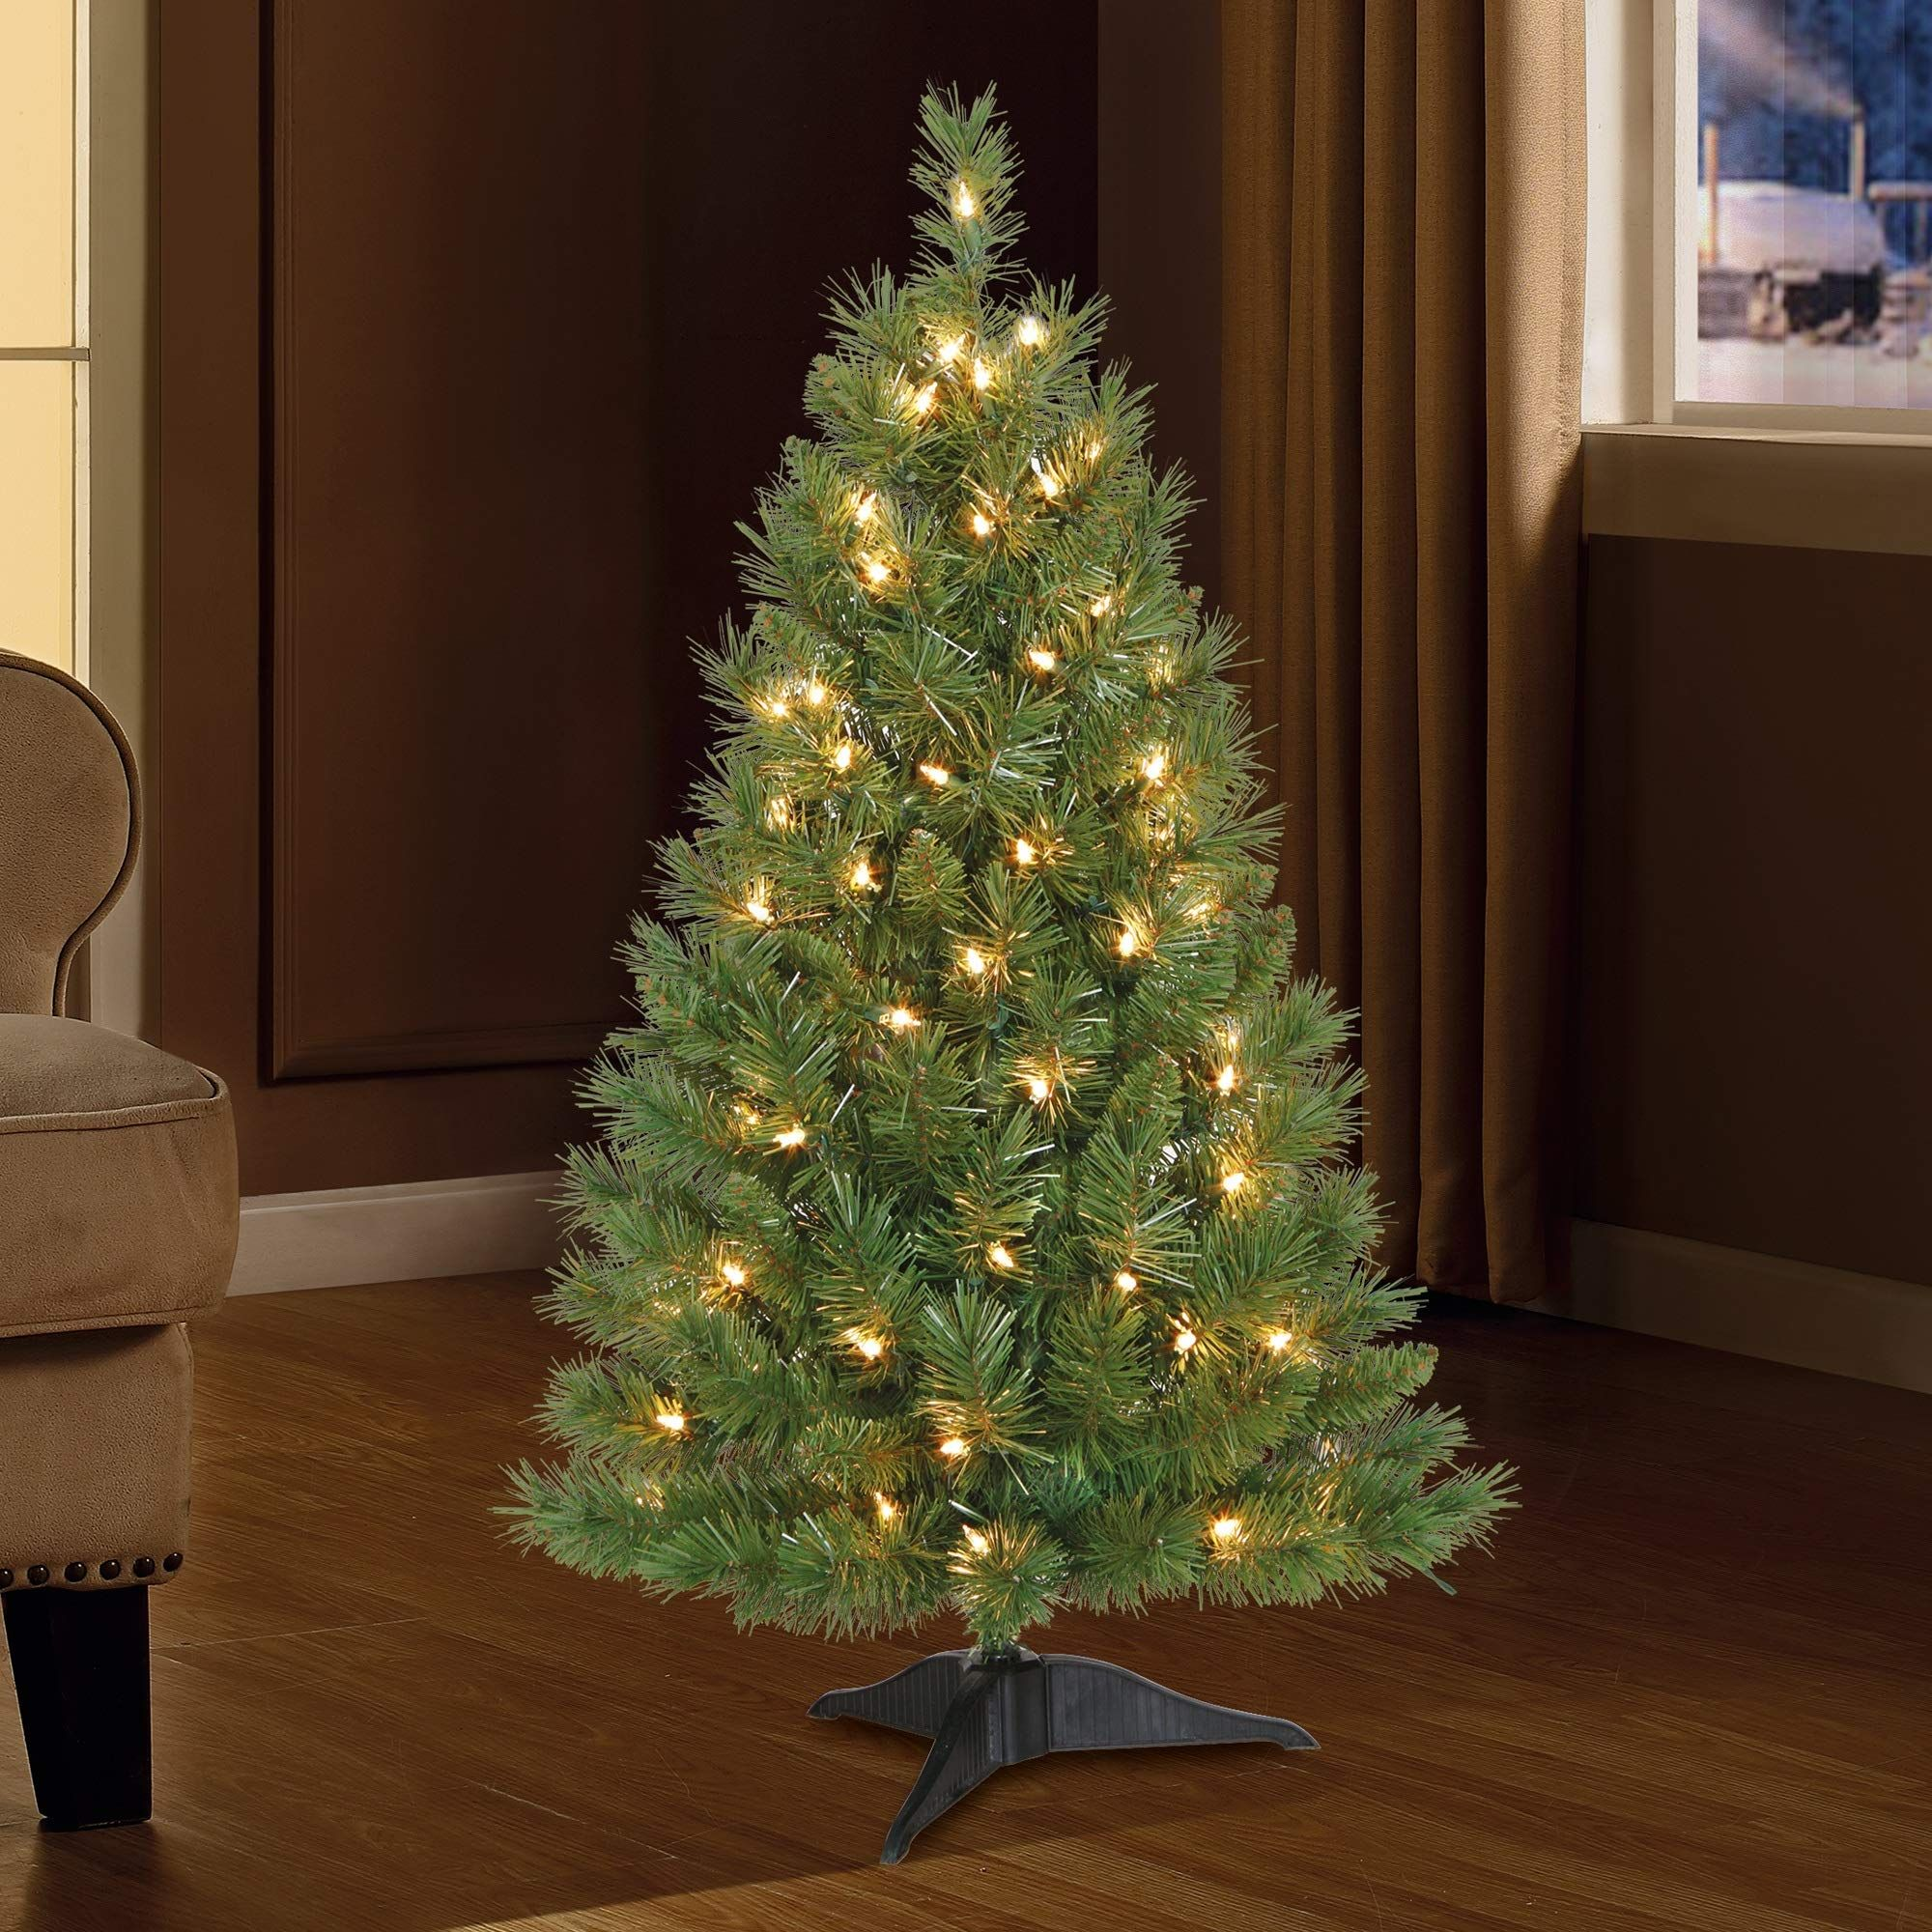 Christmas Tree Artificial 3 Feet Pre Lit Holiday Tabletop